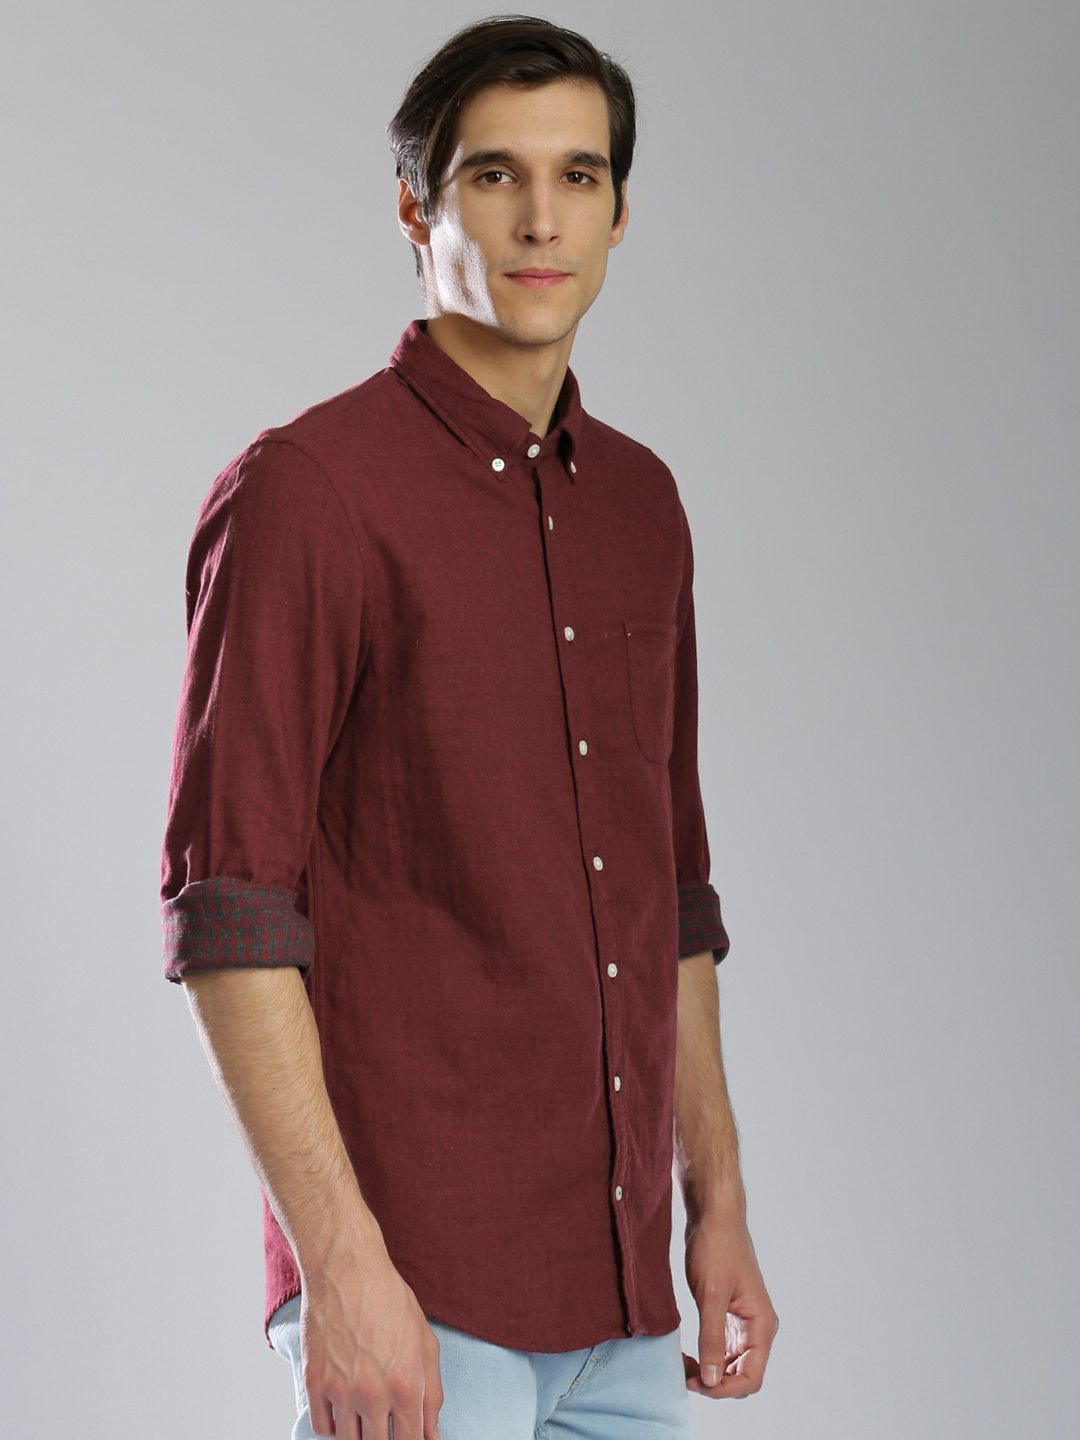 415ff124 Buy Tommy Hilfiger Men Maroon Regular Fit Solid Casual Shirt ...